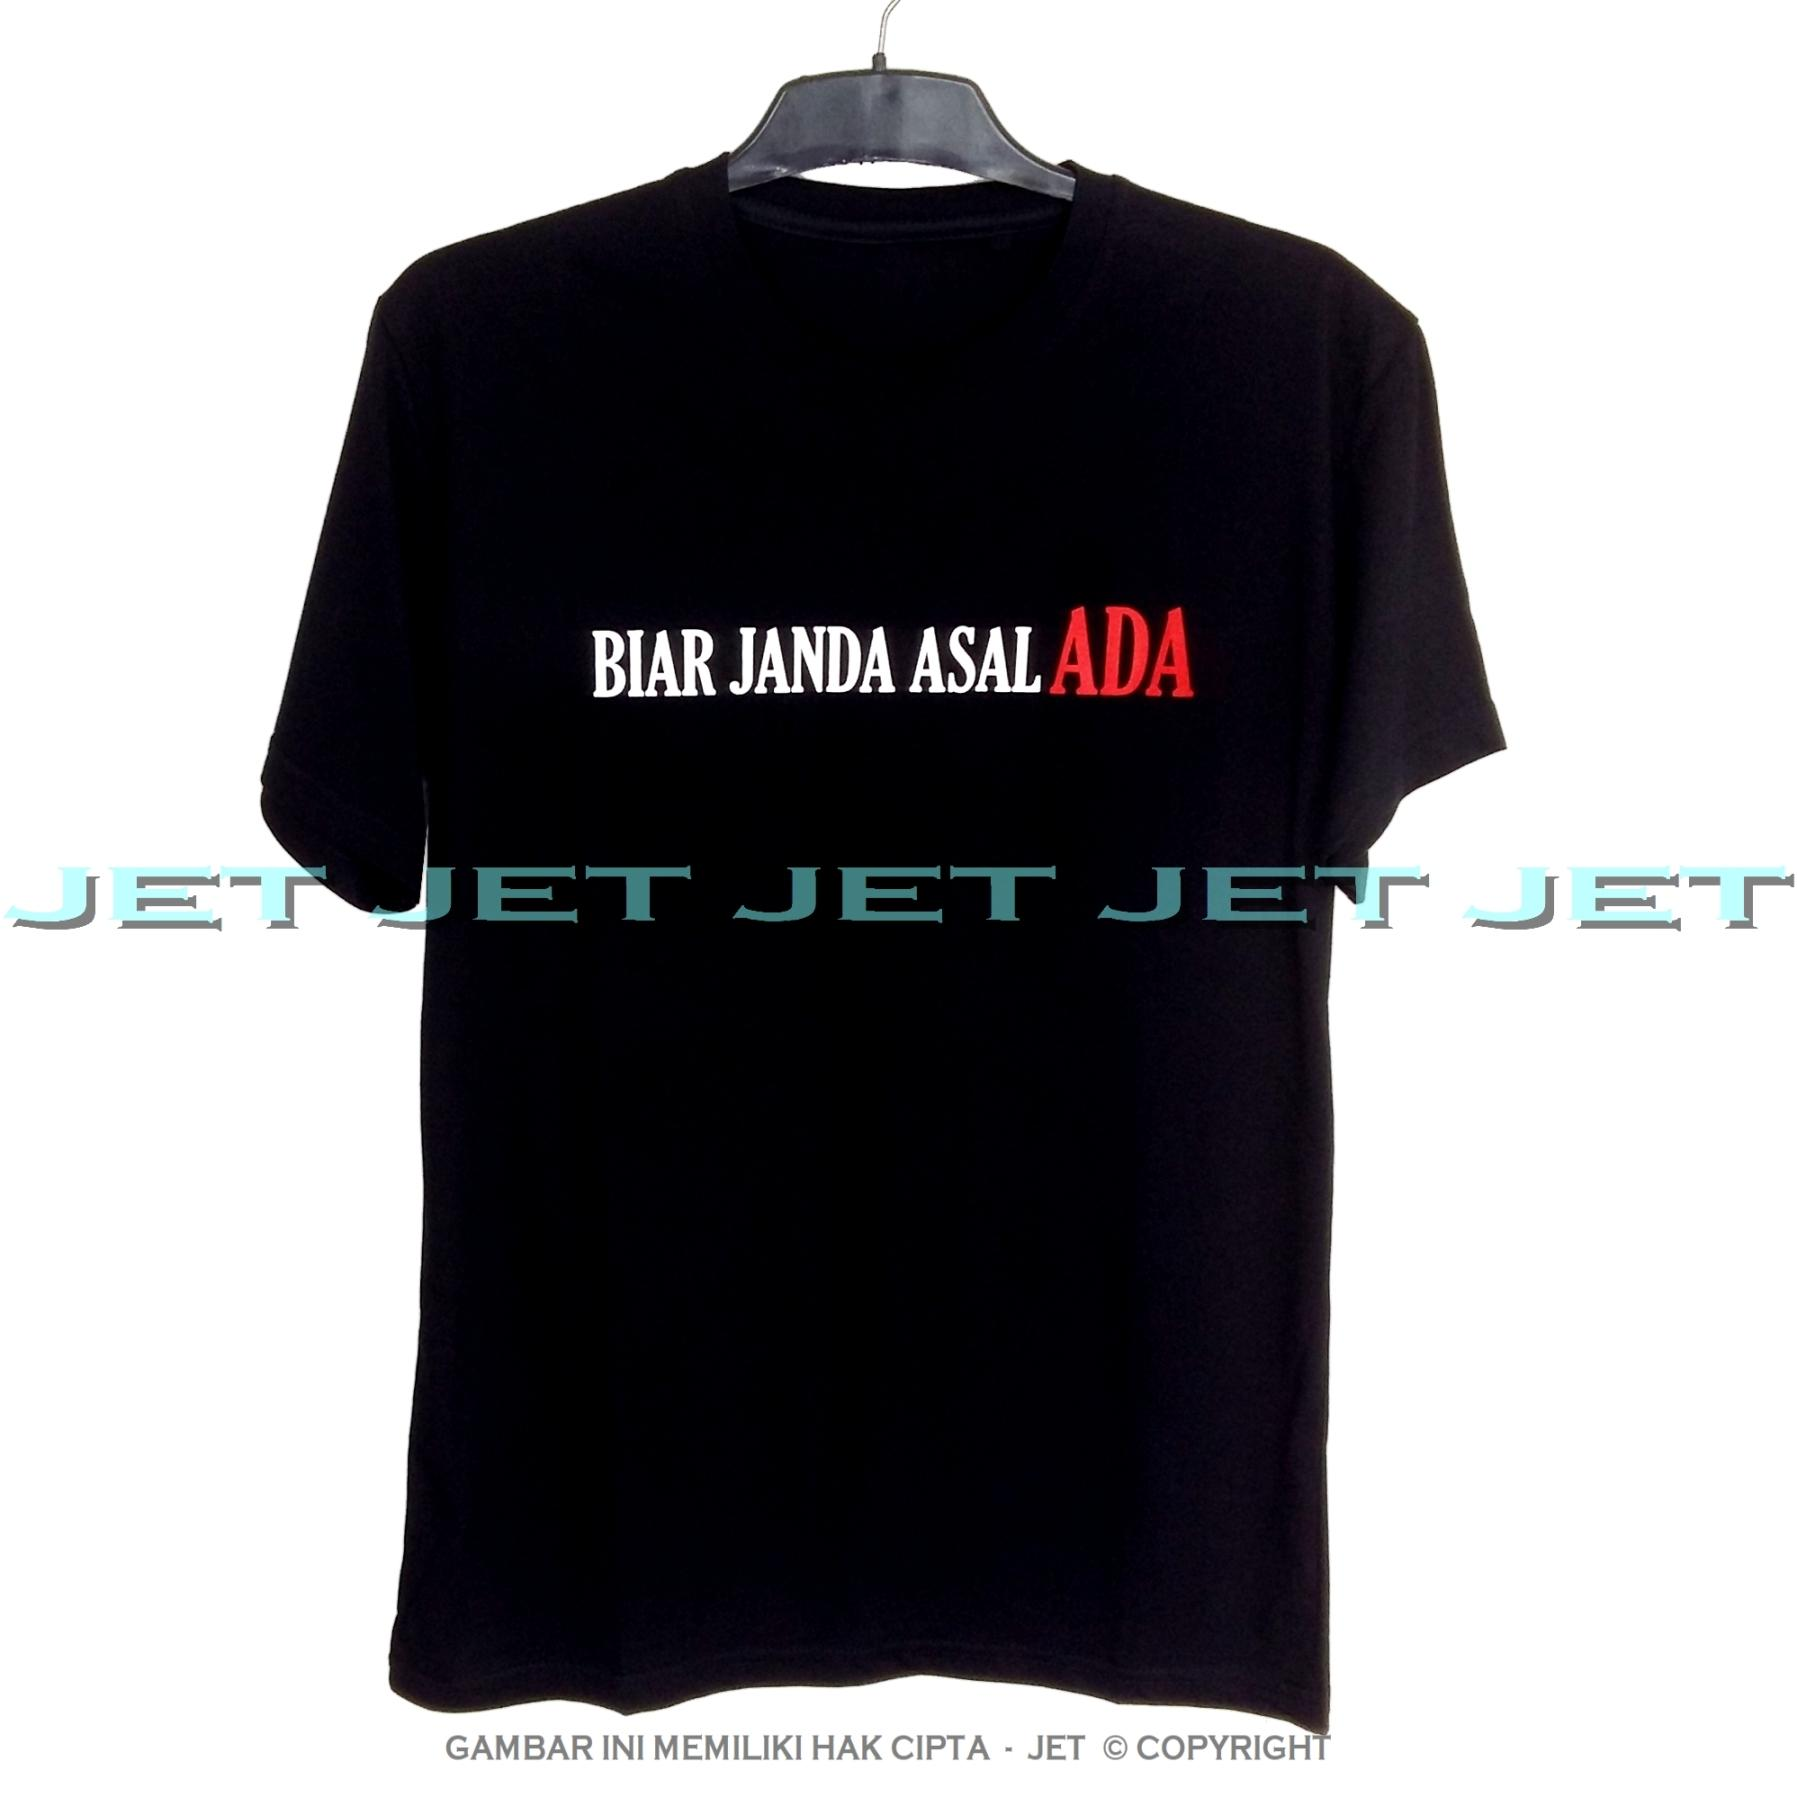 JeT - Black T-Shirt Premium Cotton Combed Janda